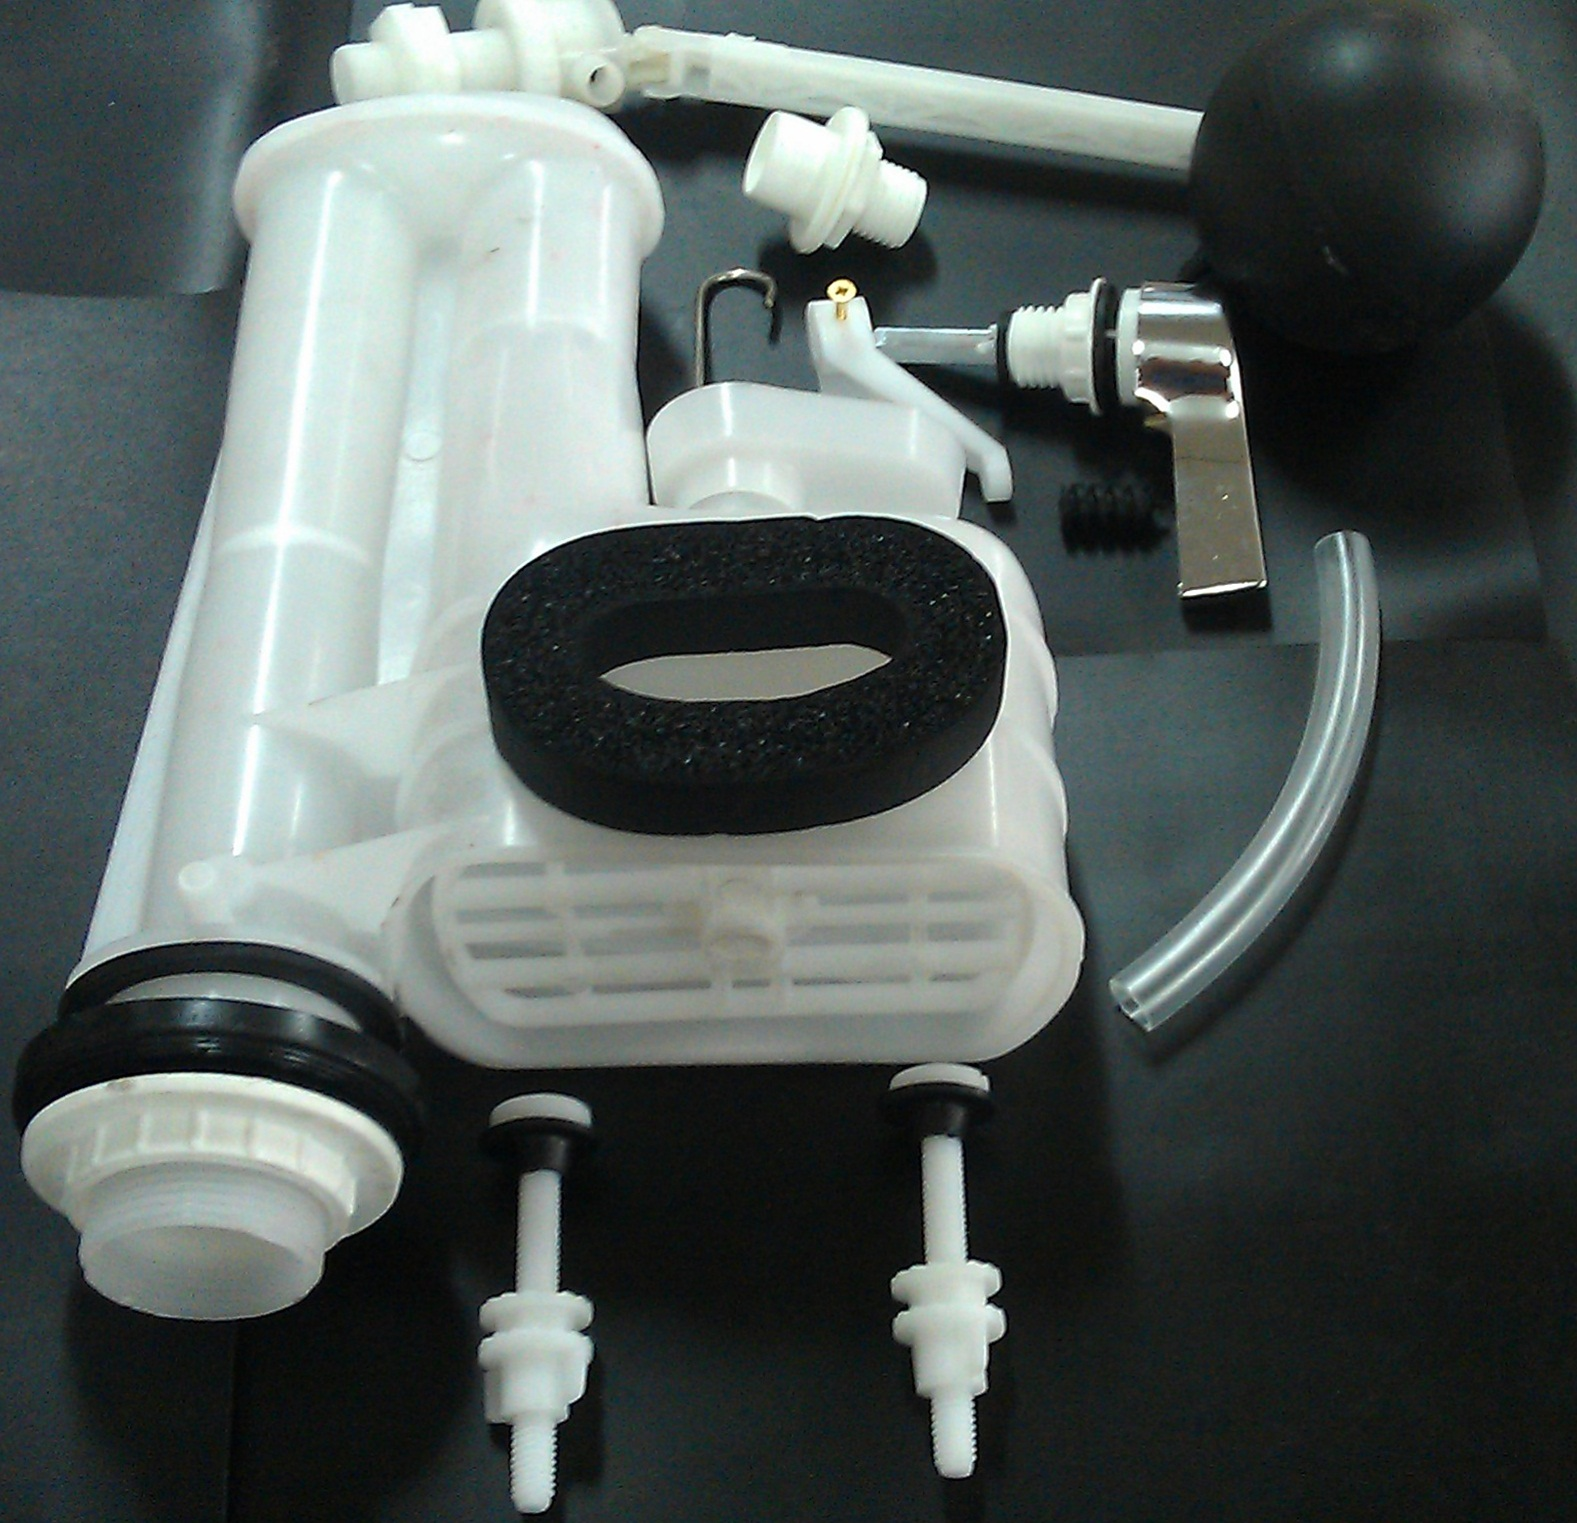 Sanitary wares fittings and spare parts. : Spare parts for